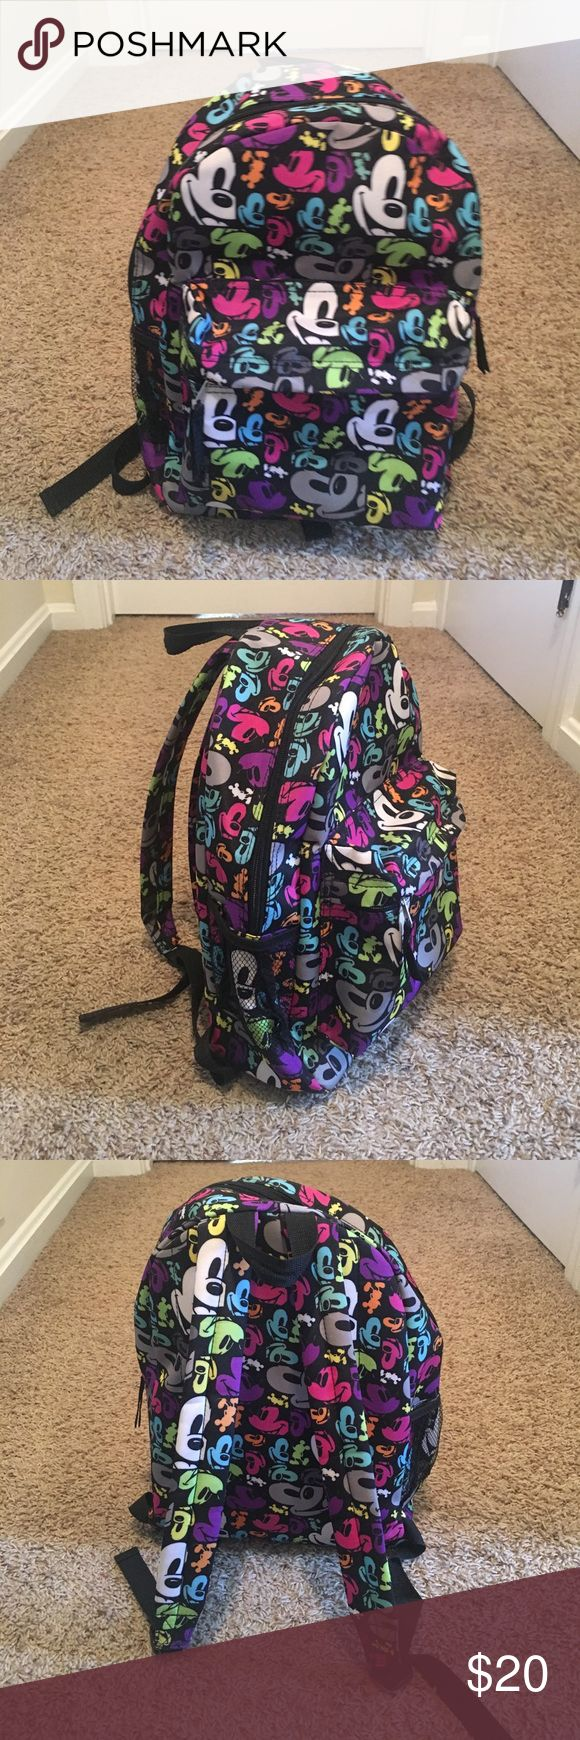 Mickey Mouse Disney Backpack Mickey Mouse pop art print colorful backpack. Front pocket, side mesh pocket, and large interior. Purchased at Disney World on vacation and only carried on that trip. Perfect condition! Such a fun print for youngsters or those young at heart! Disney Bags Backpacks